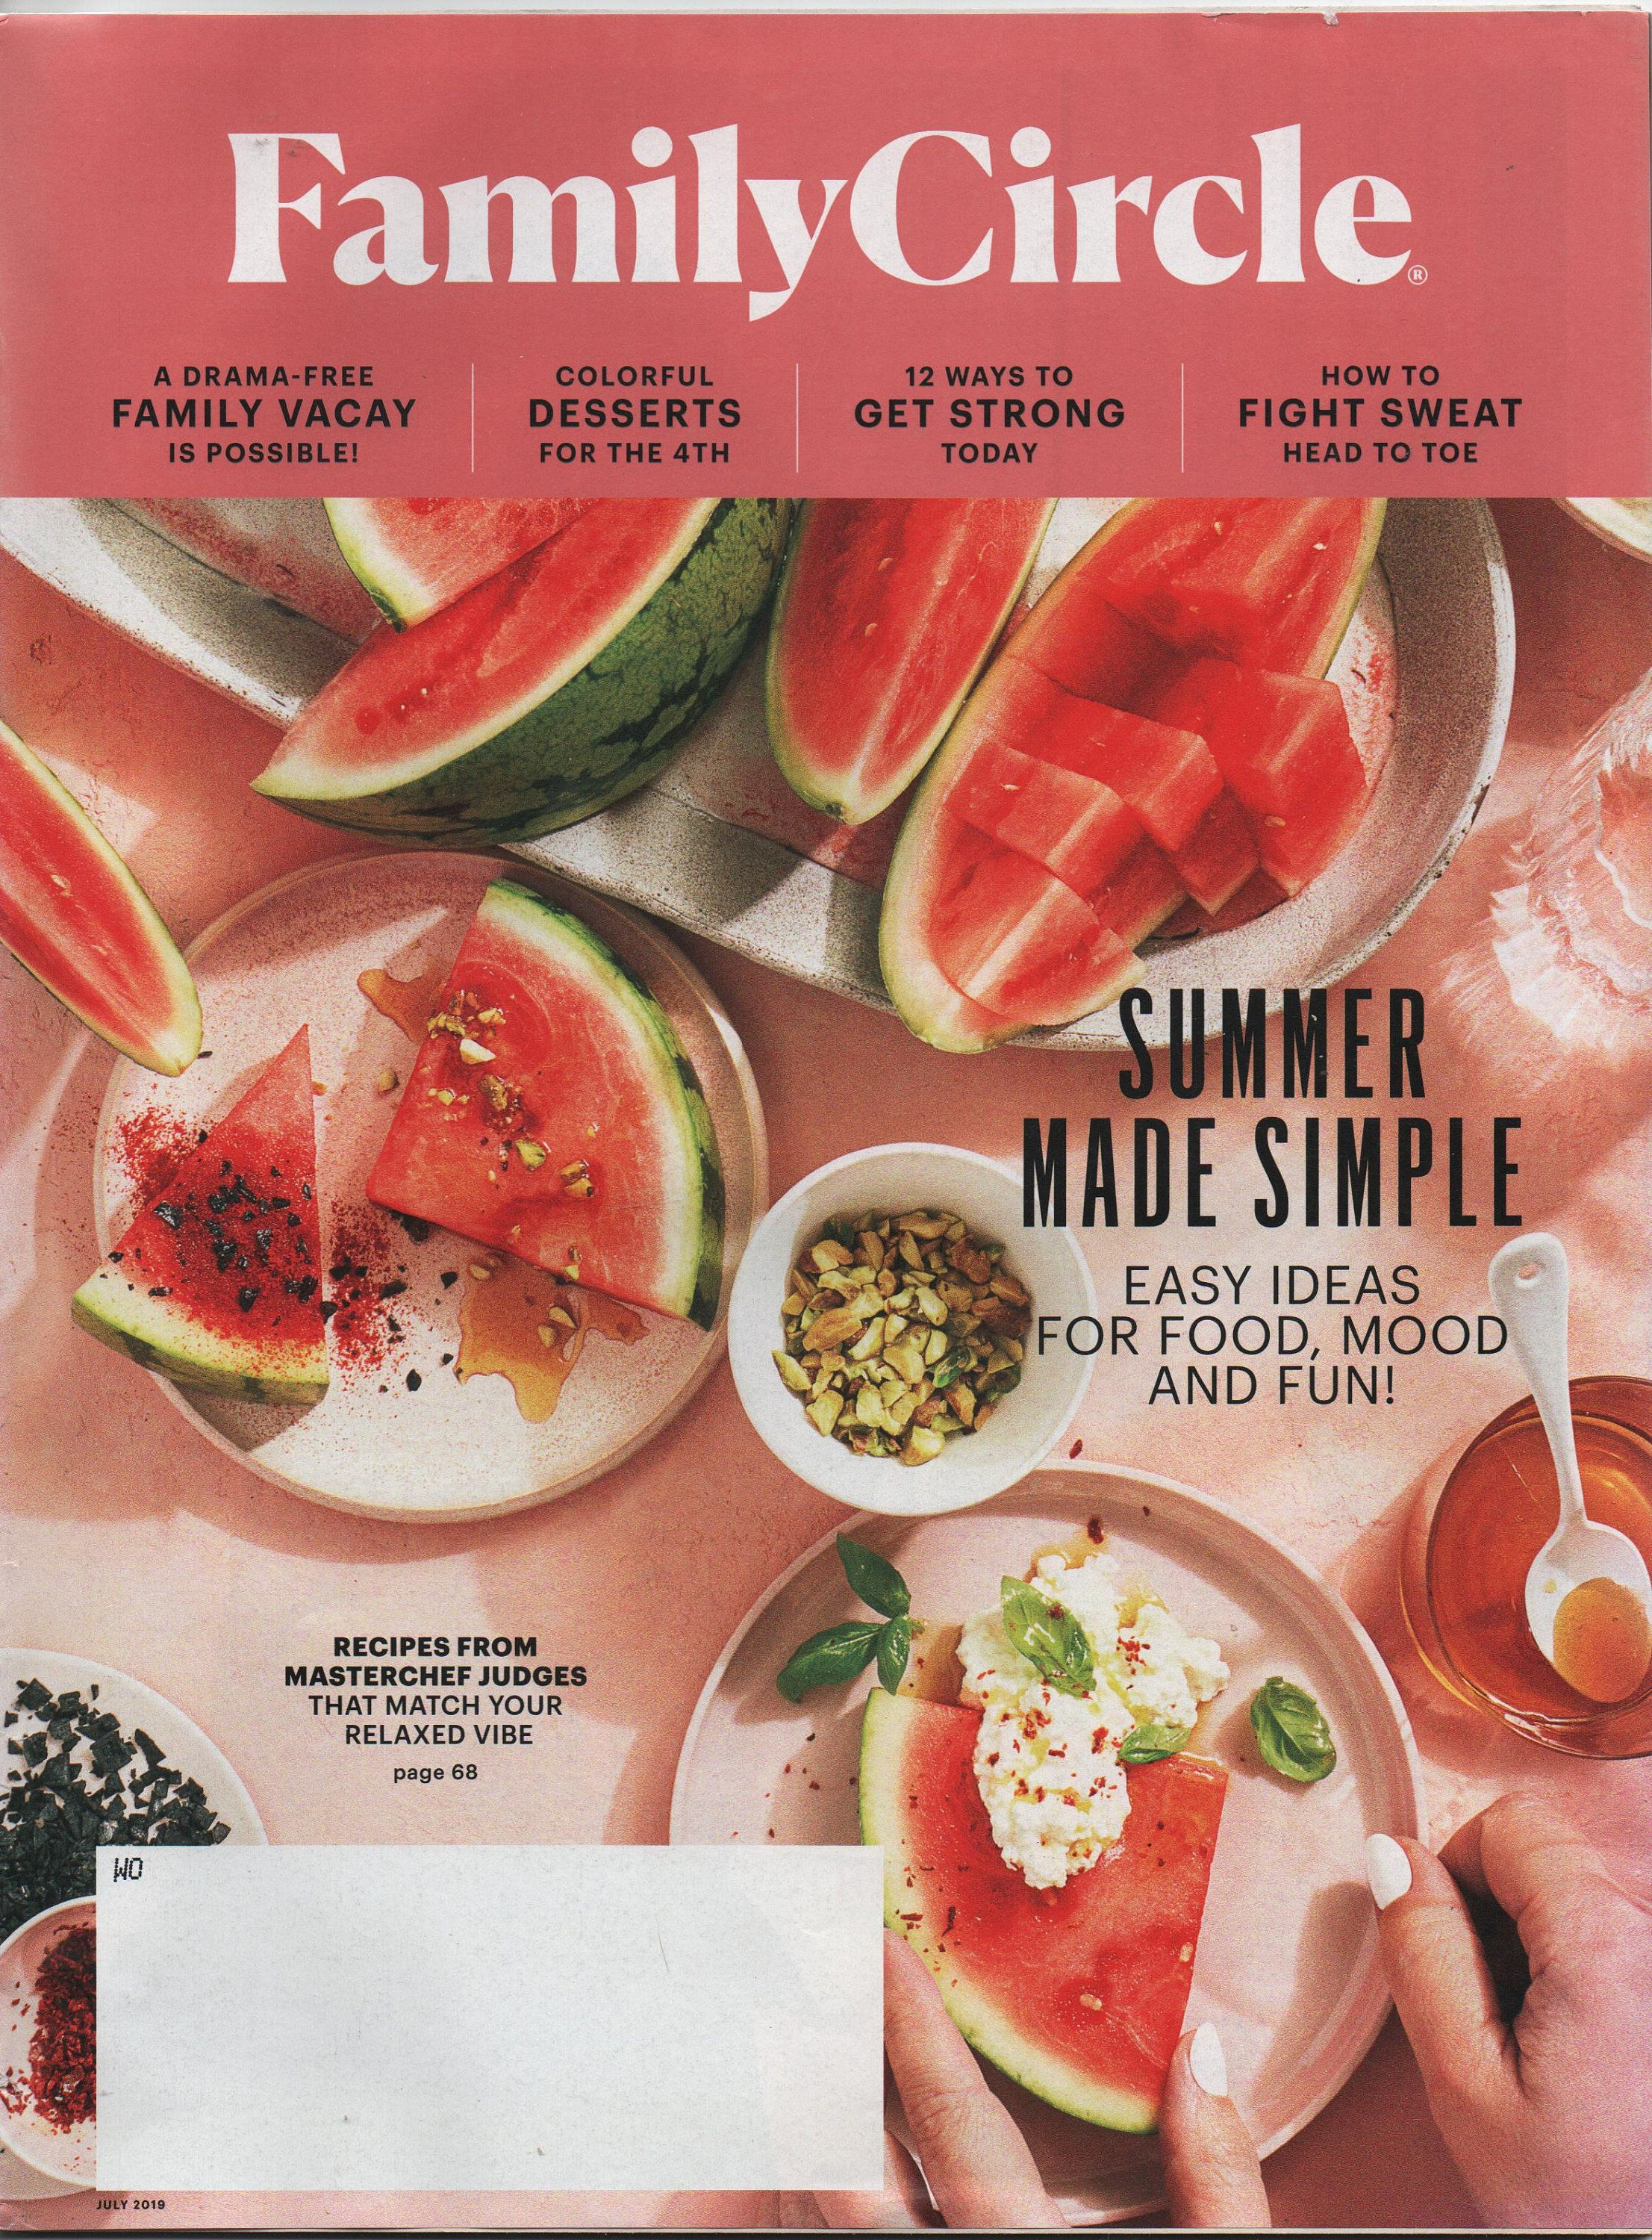 Family Circle Magazine, July 2019, good shape, Watermelon, Desserts, Get Strong, Fight Sweat, Recipes, Pet Care, Washing the Car, Ears